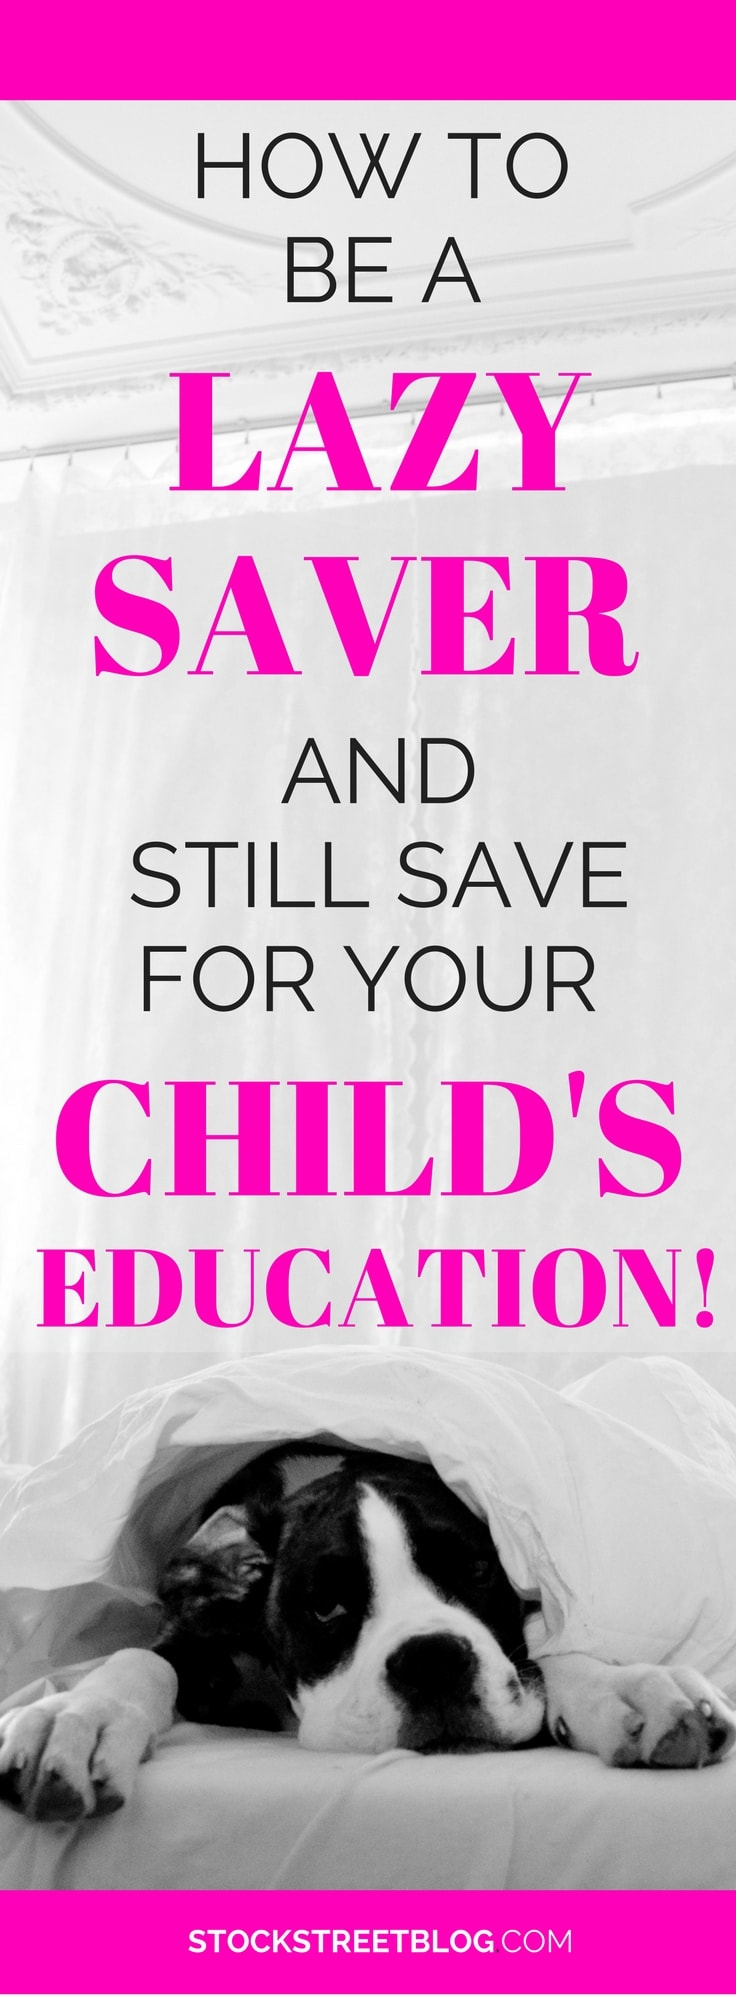 When it comes to your children's future, it is important to start saving and planning as early as possible. Of course, not all of us are on top this! For this reason, I put together this strategy using a FREE app to help you save and invest for your child's education. This way you can get it setup within 15 minutes and start saving and investing today! #WAHM #SAHM #mom #saving #money #stockmarket #financialfreedom #investing